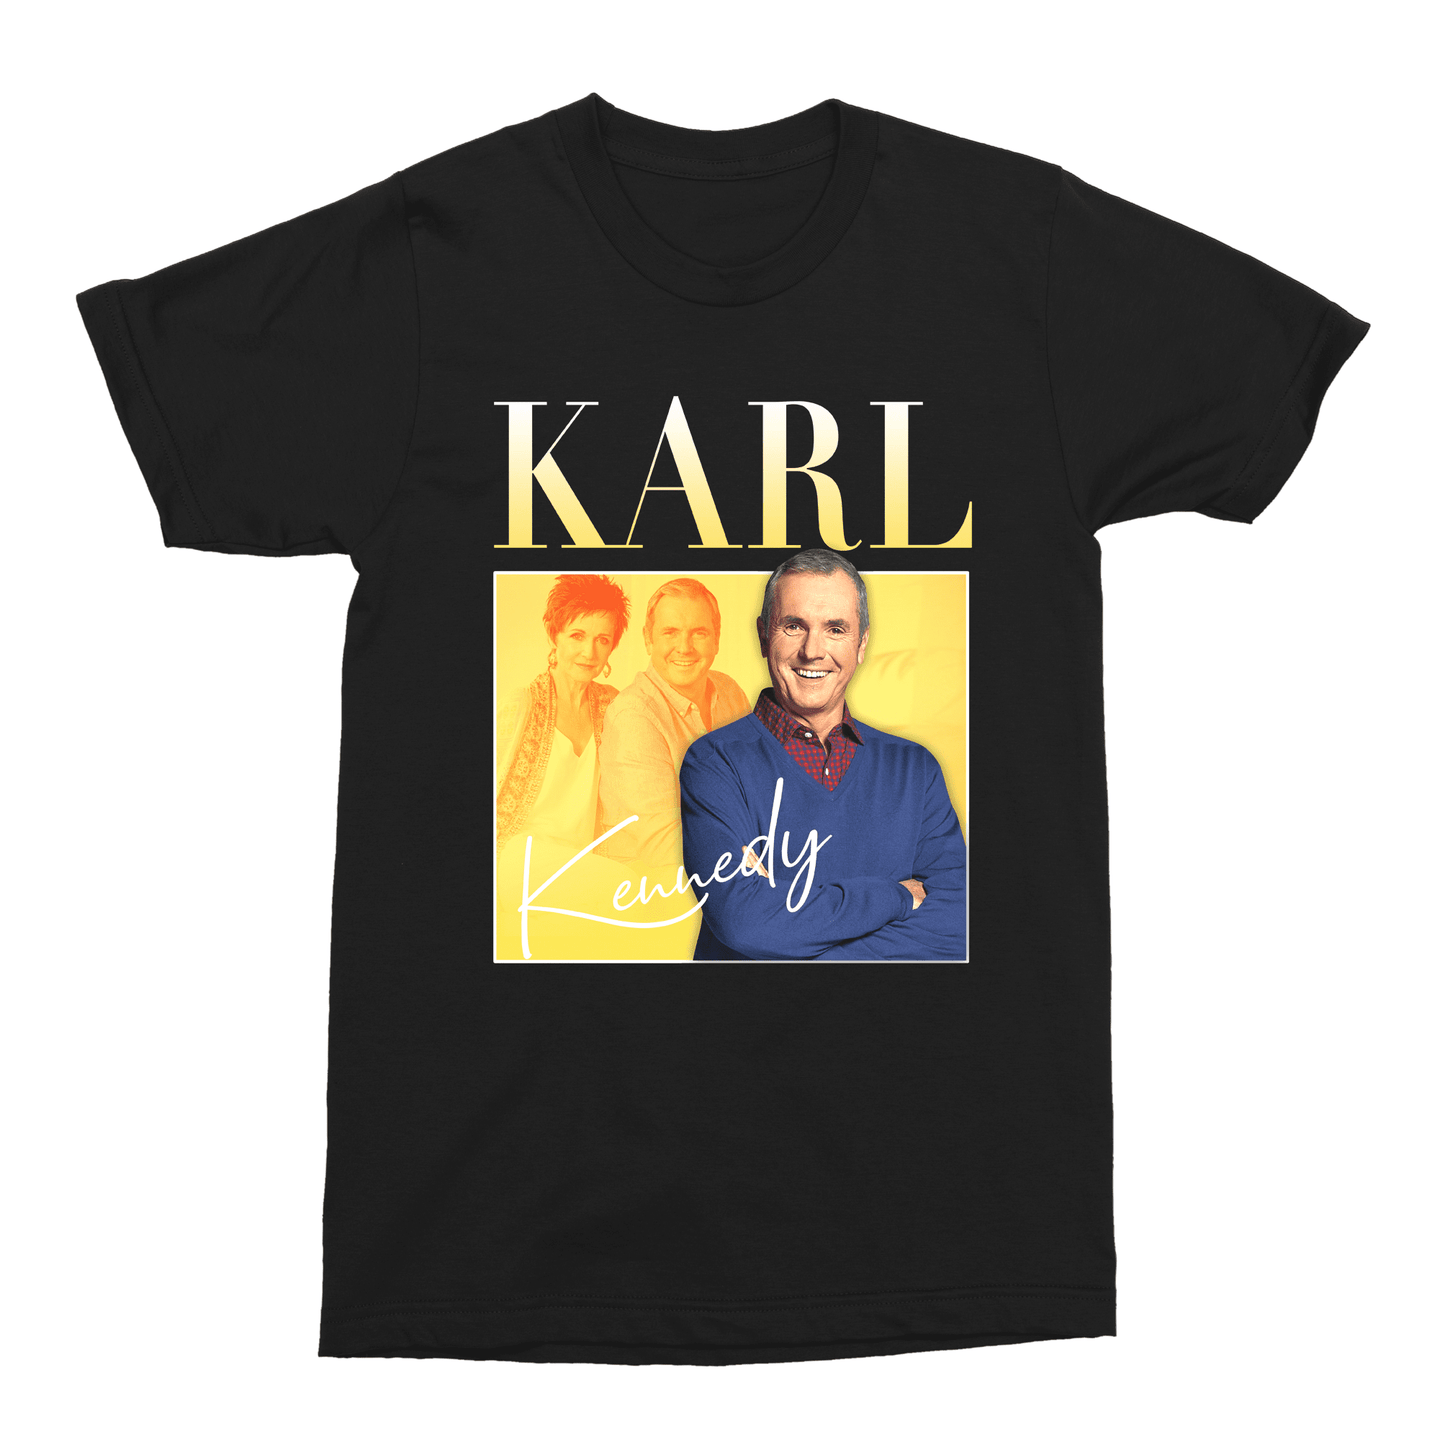 Karl Kennedy Neighbours Unisex Vintage Throwback T-Shirt - Timeless Tees